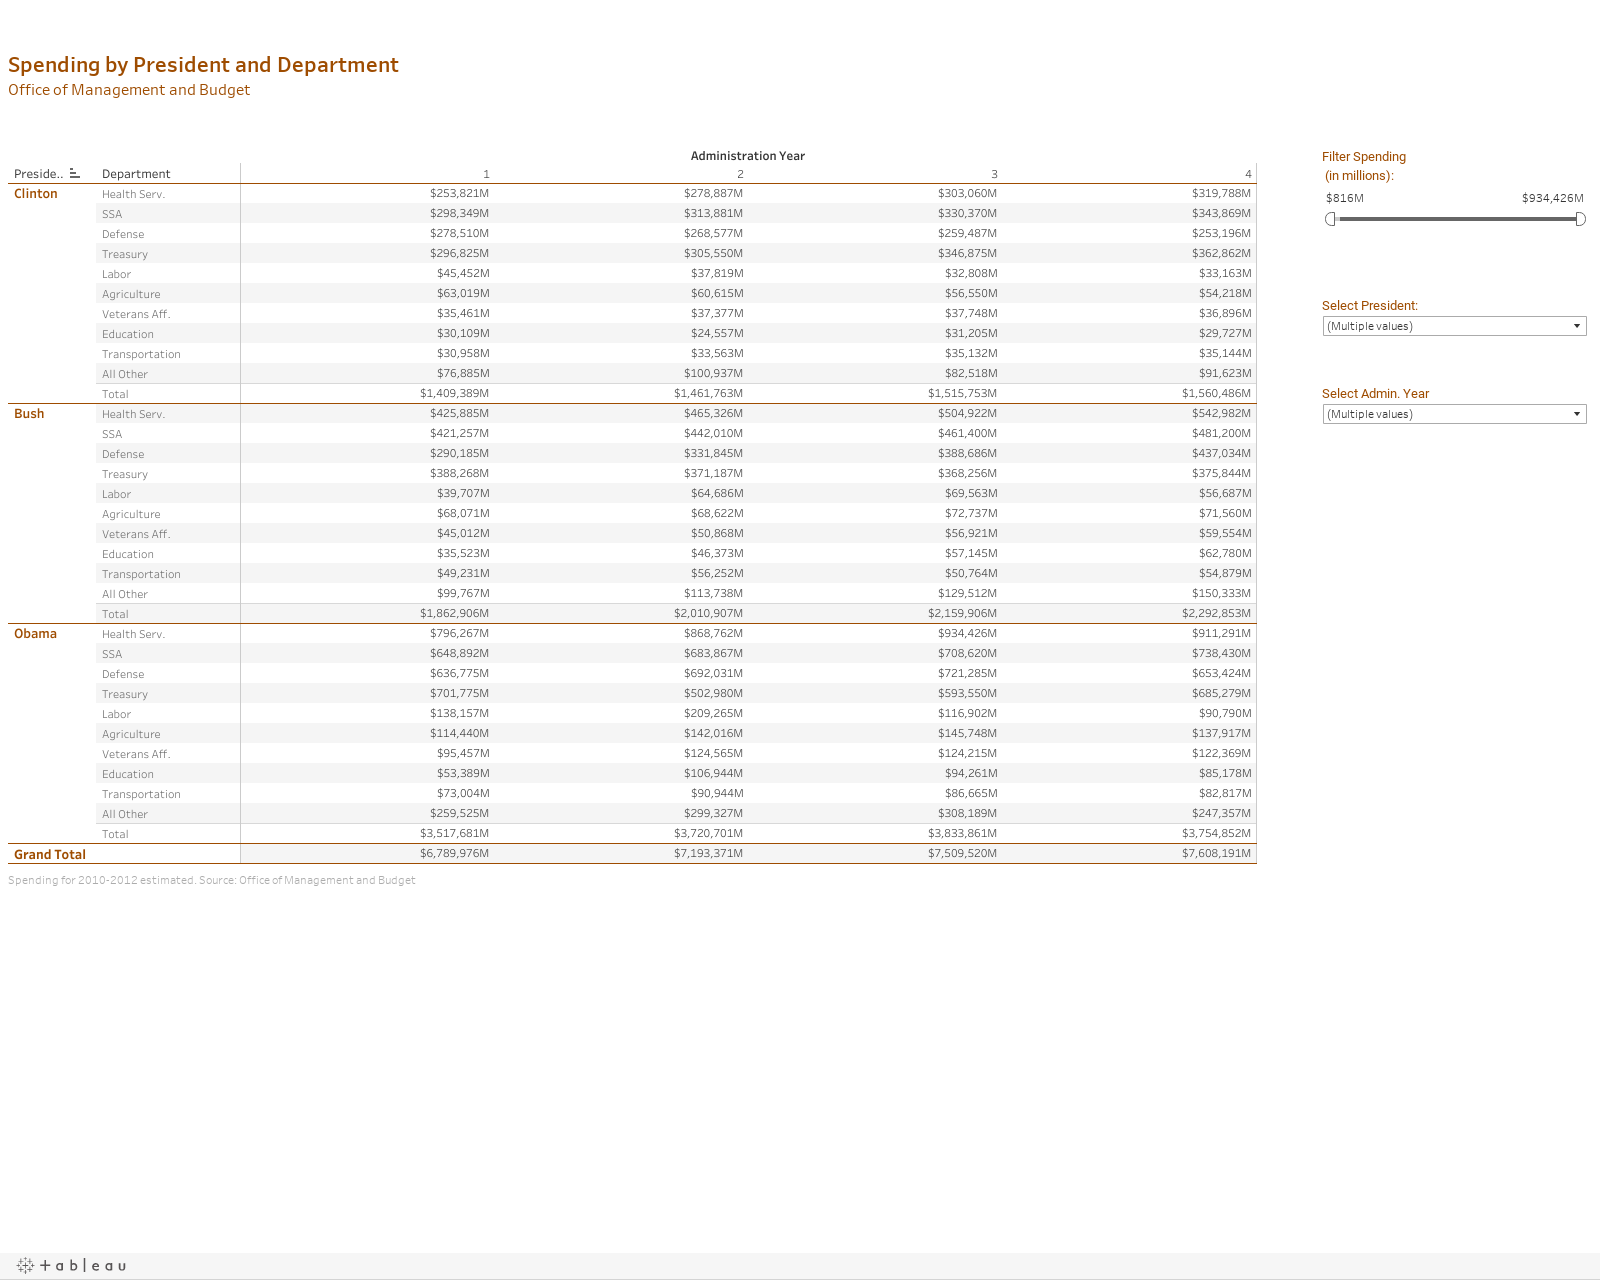 Spending by President and DepartmentOffice of Management and Budget